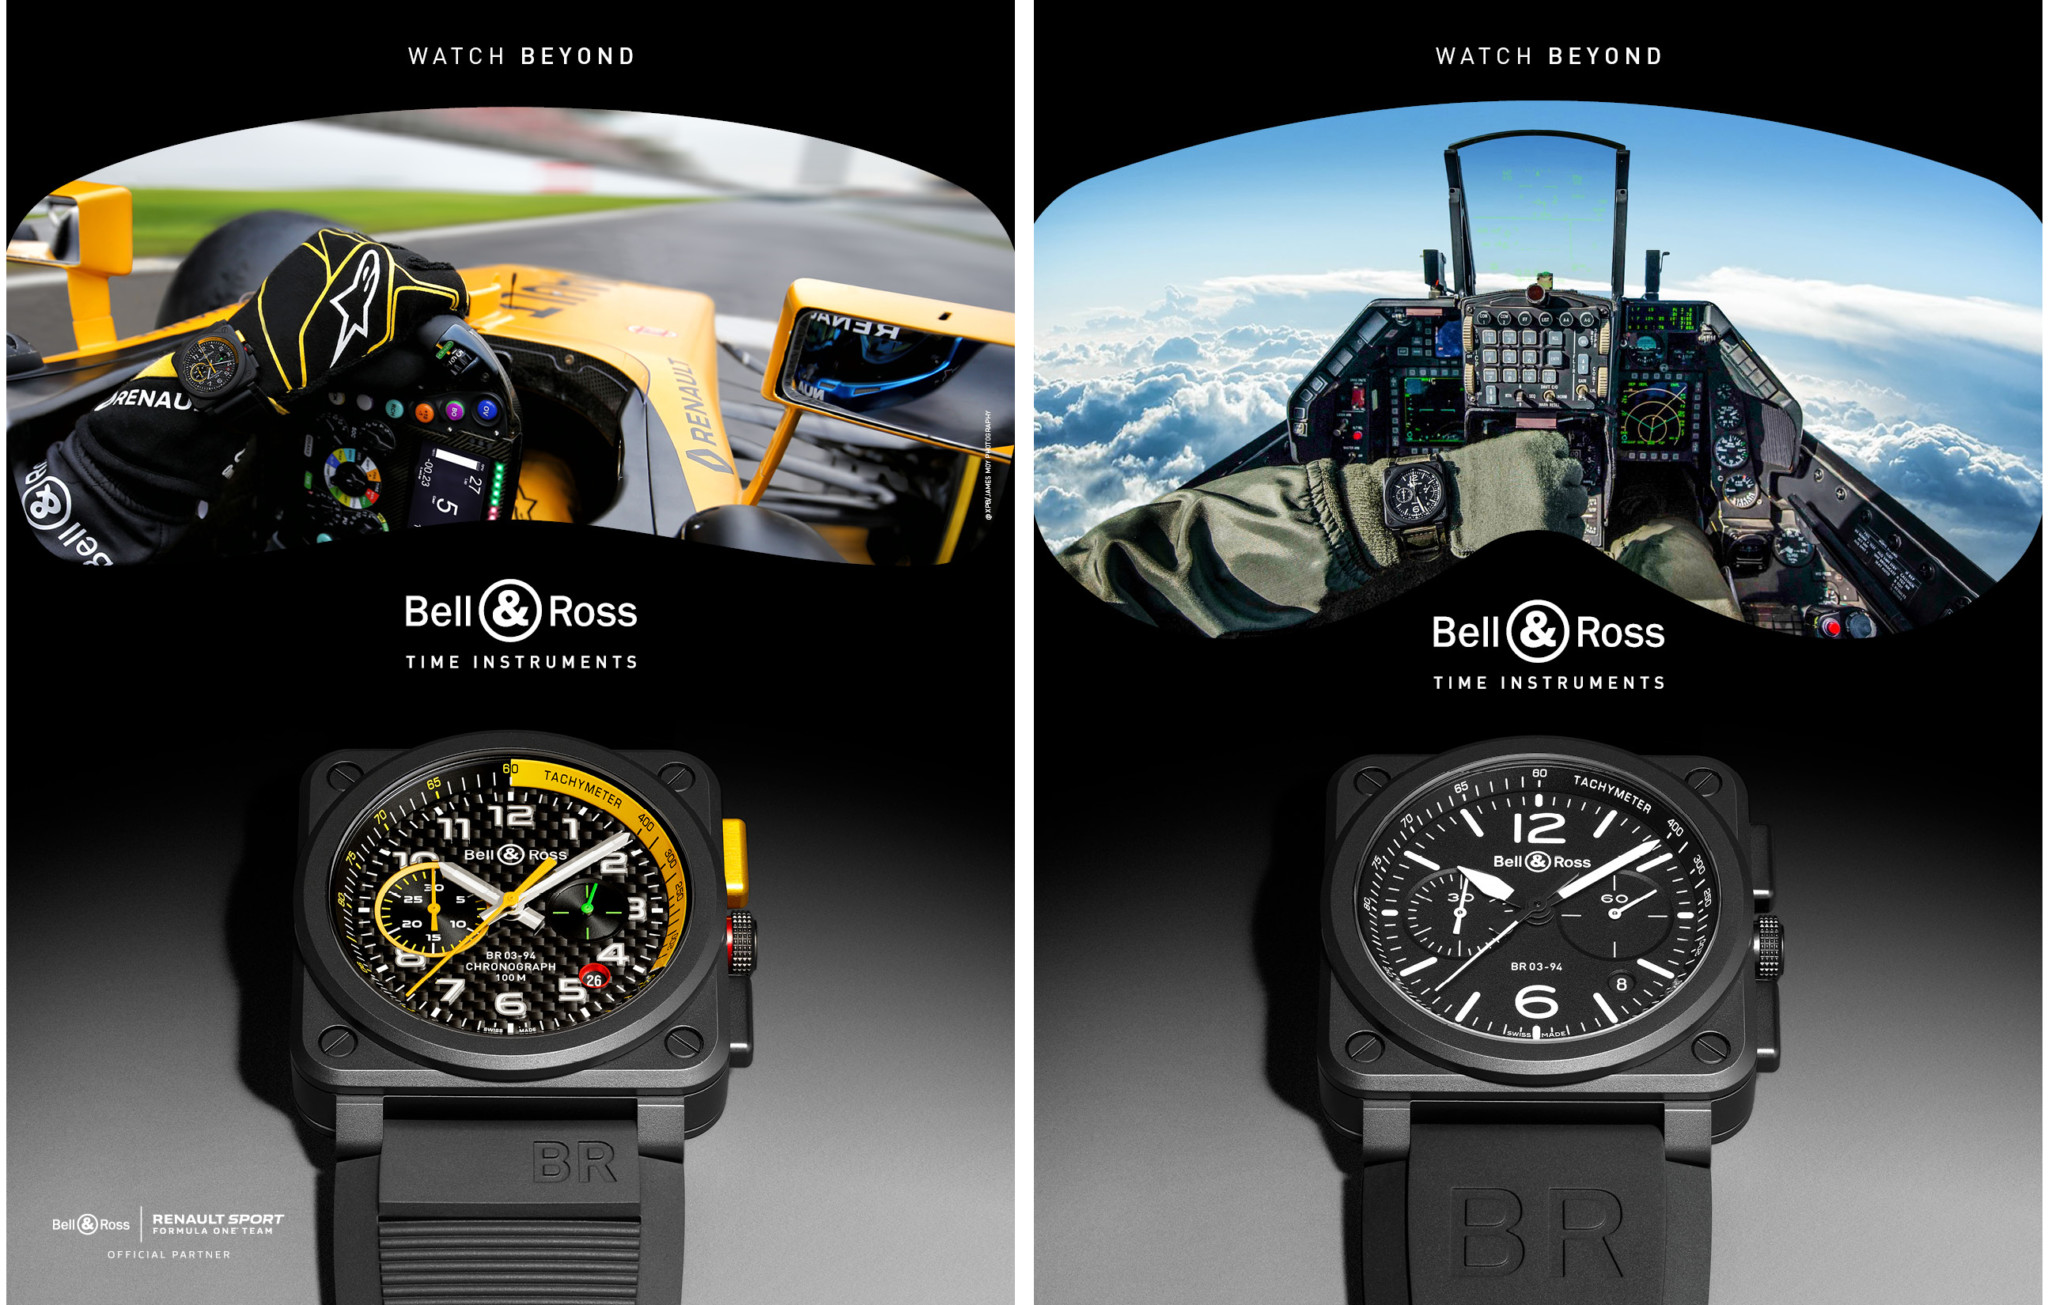 bell and ross 2017 adverts